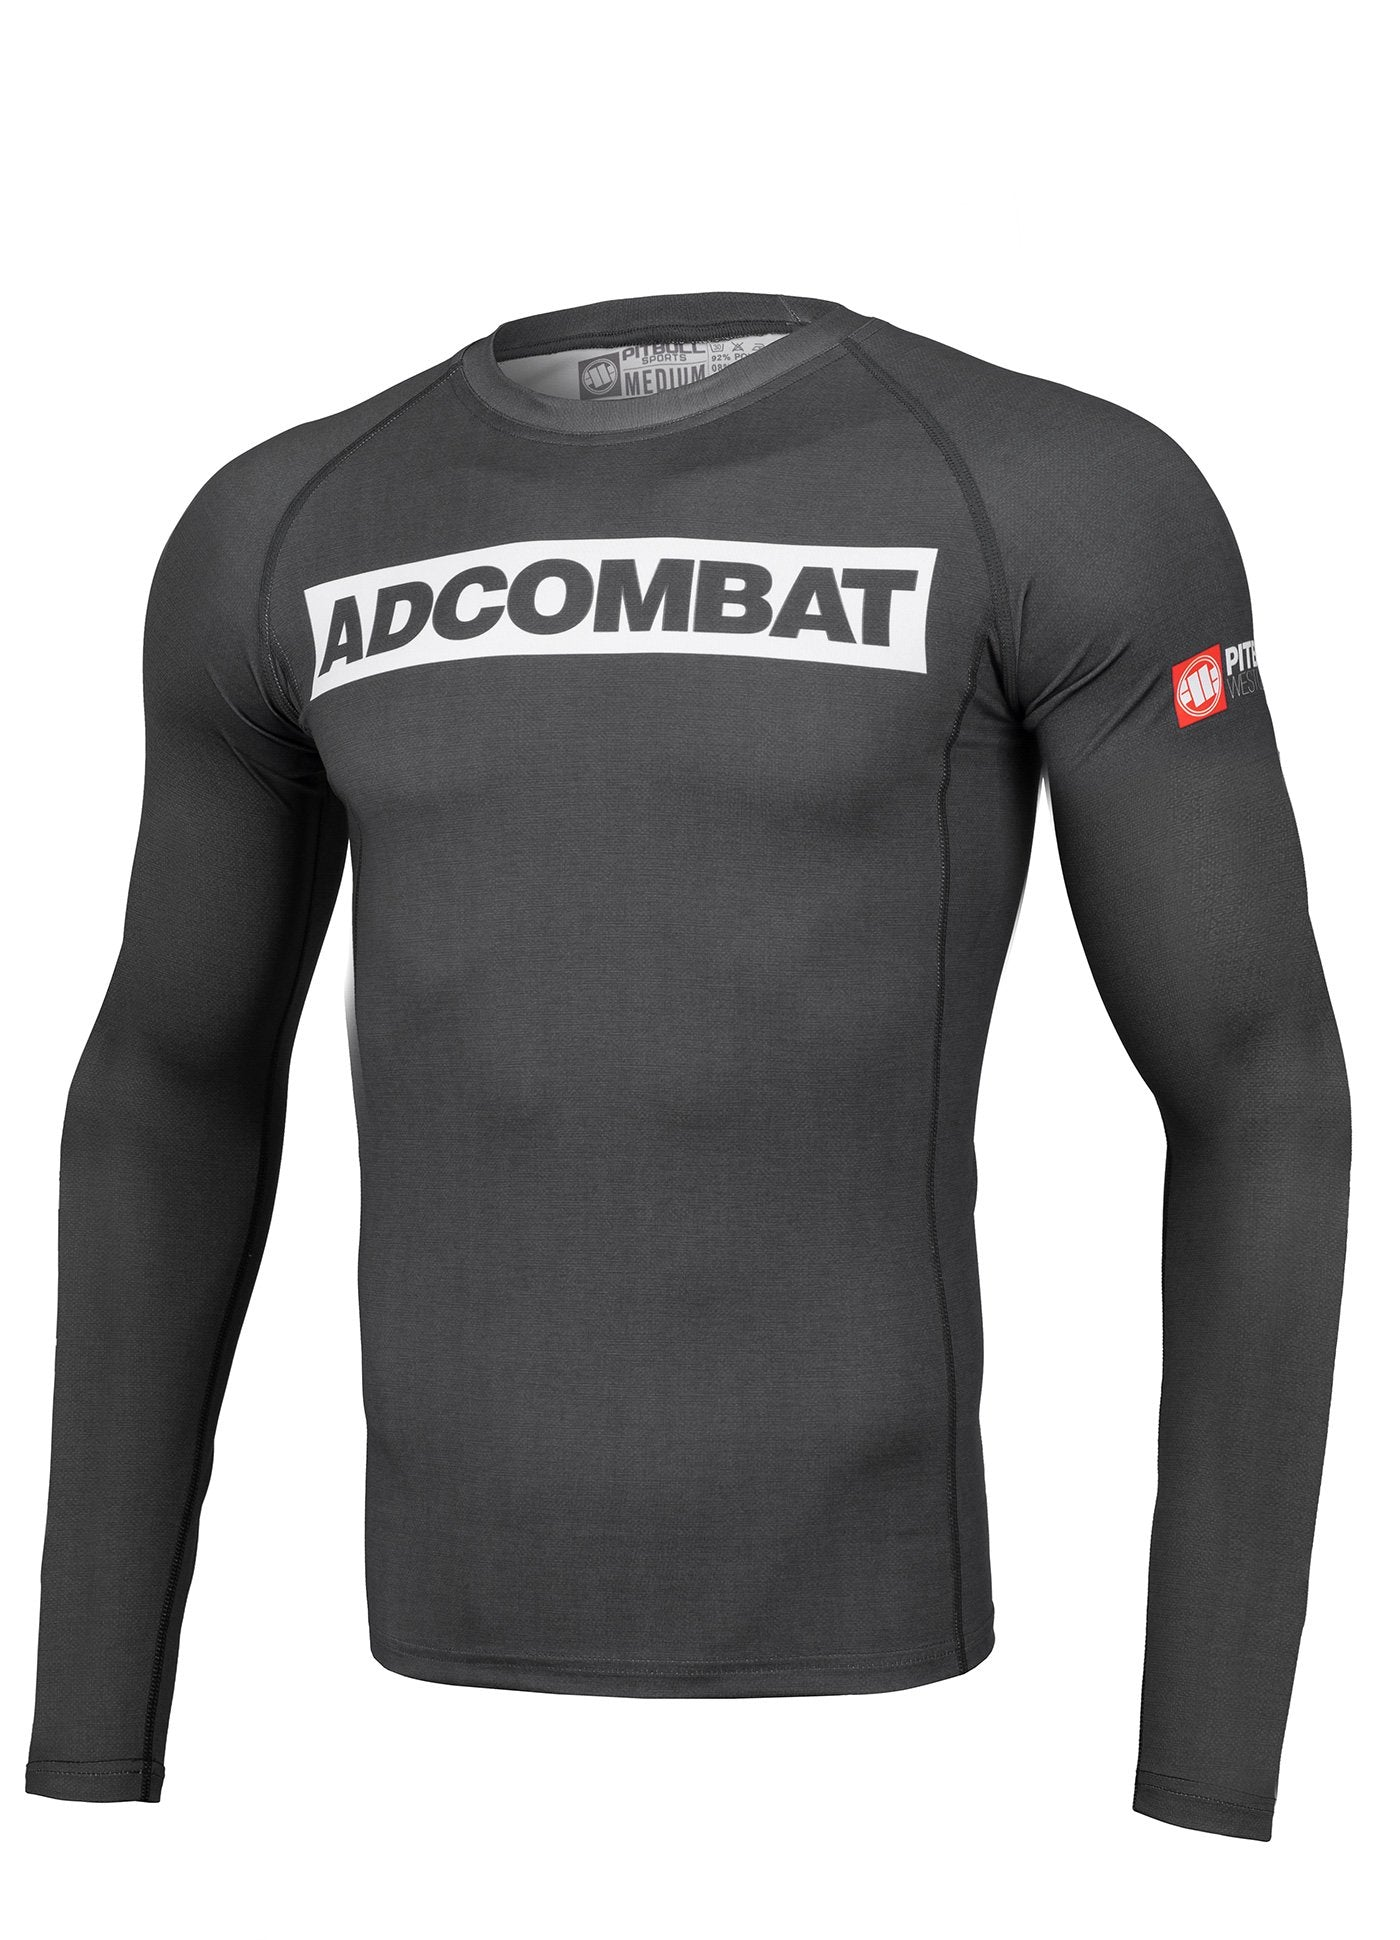 ADCC HILLTOP Grey Long Sleeve Rashguard - Pitbull West Coast U.S.A.